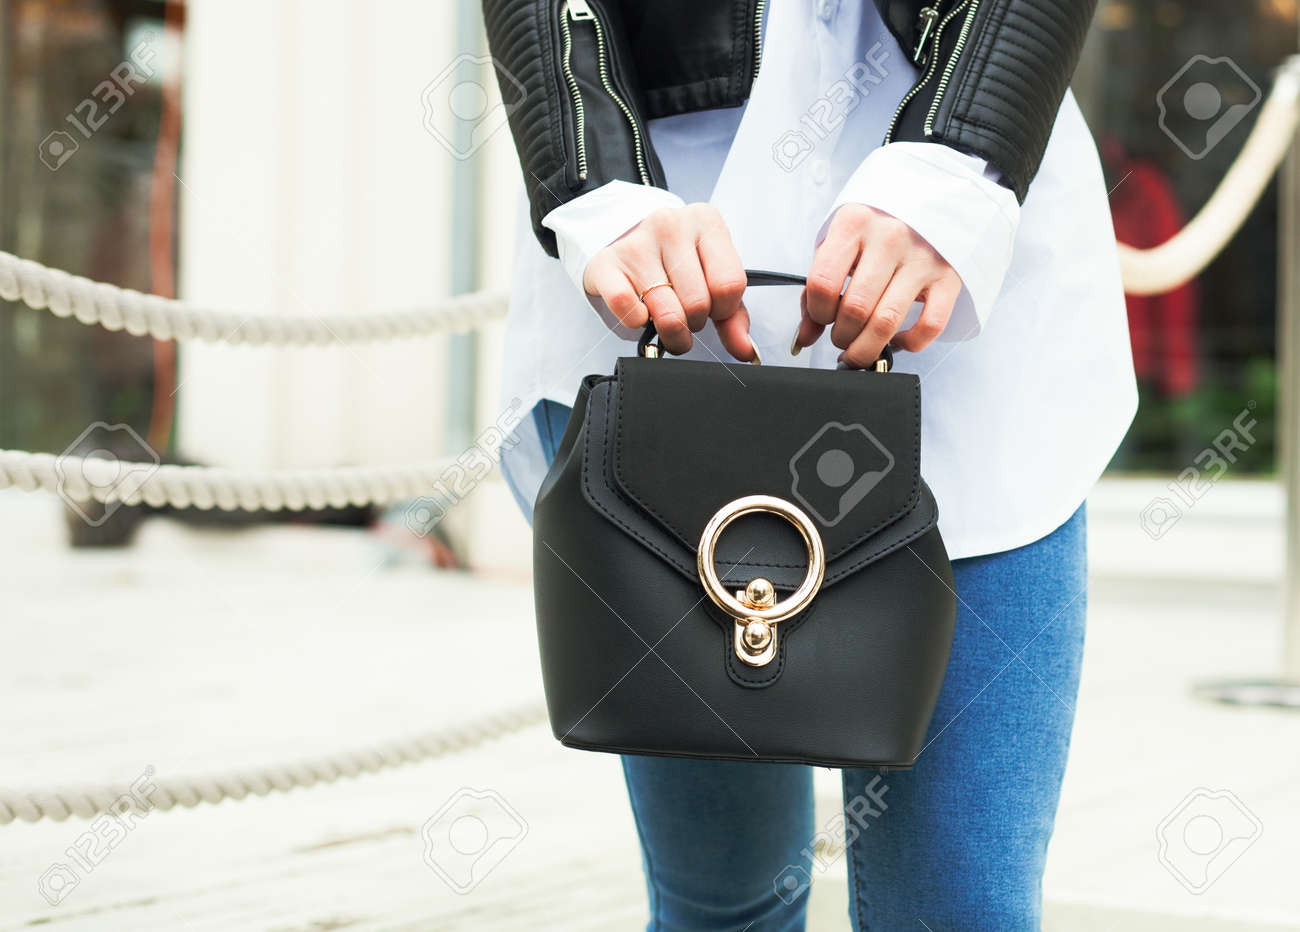 Fashion and Beauty  The girl is holding a fashionable small handbag